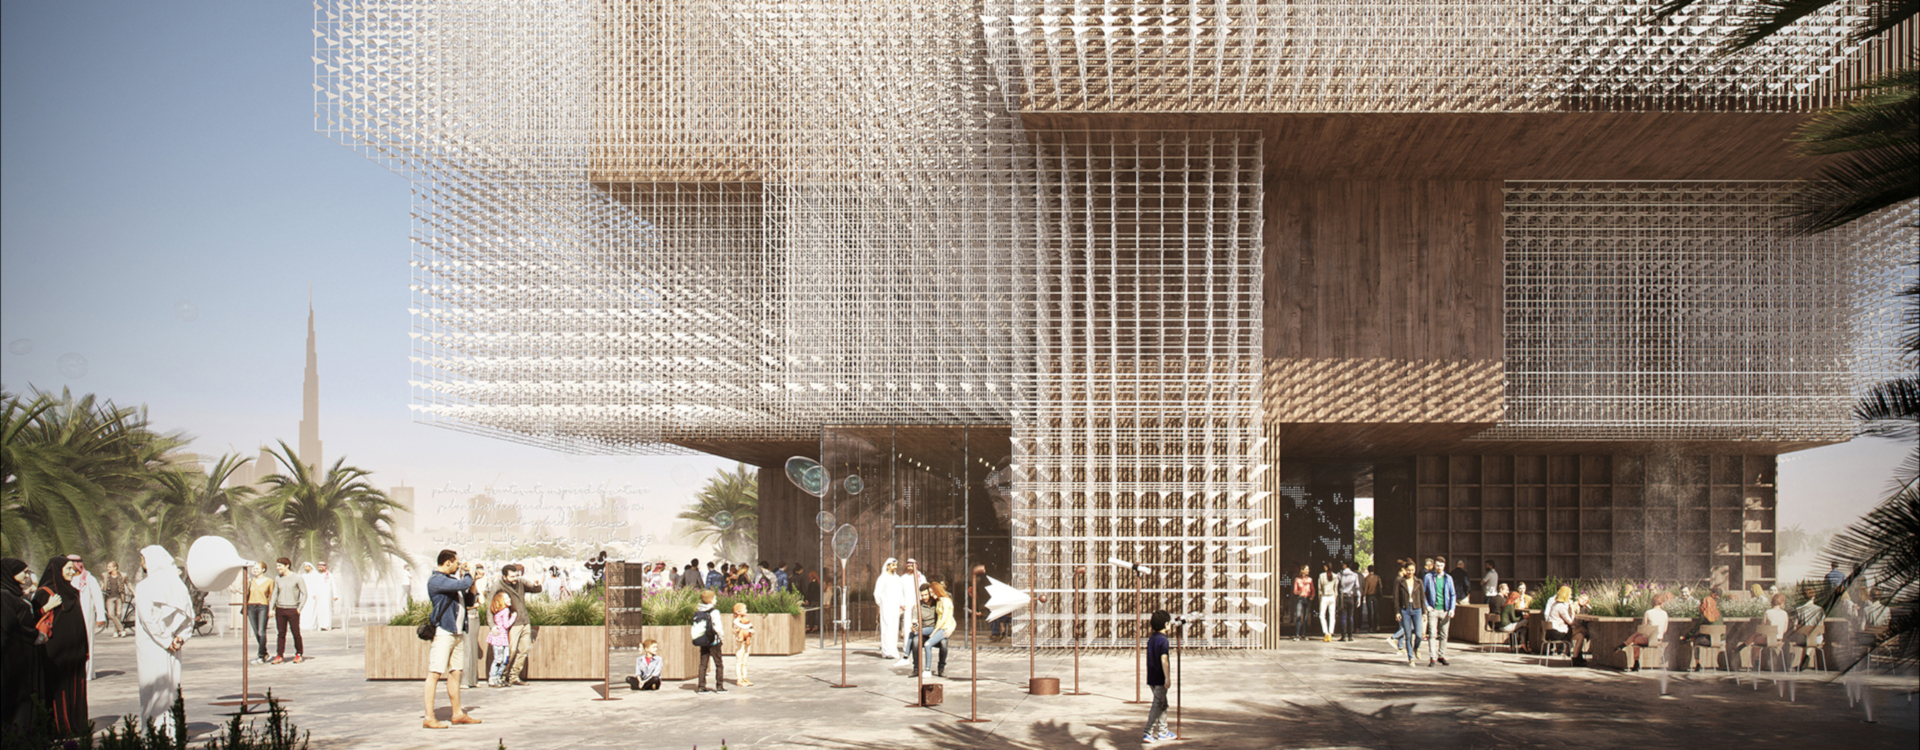 Polish pavilion facade - 2020 World Expo in Dubai | WSP